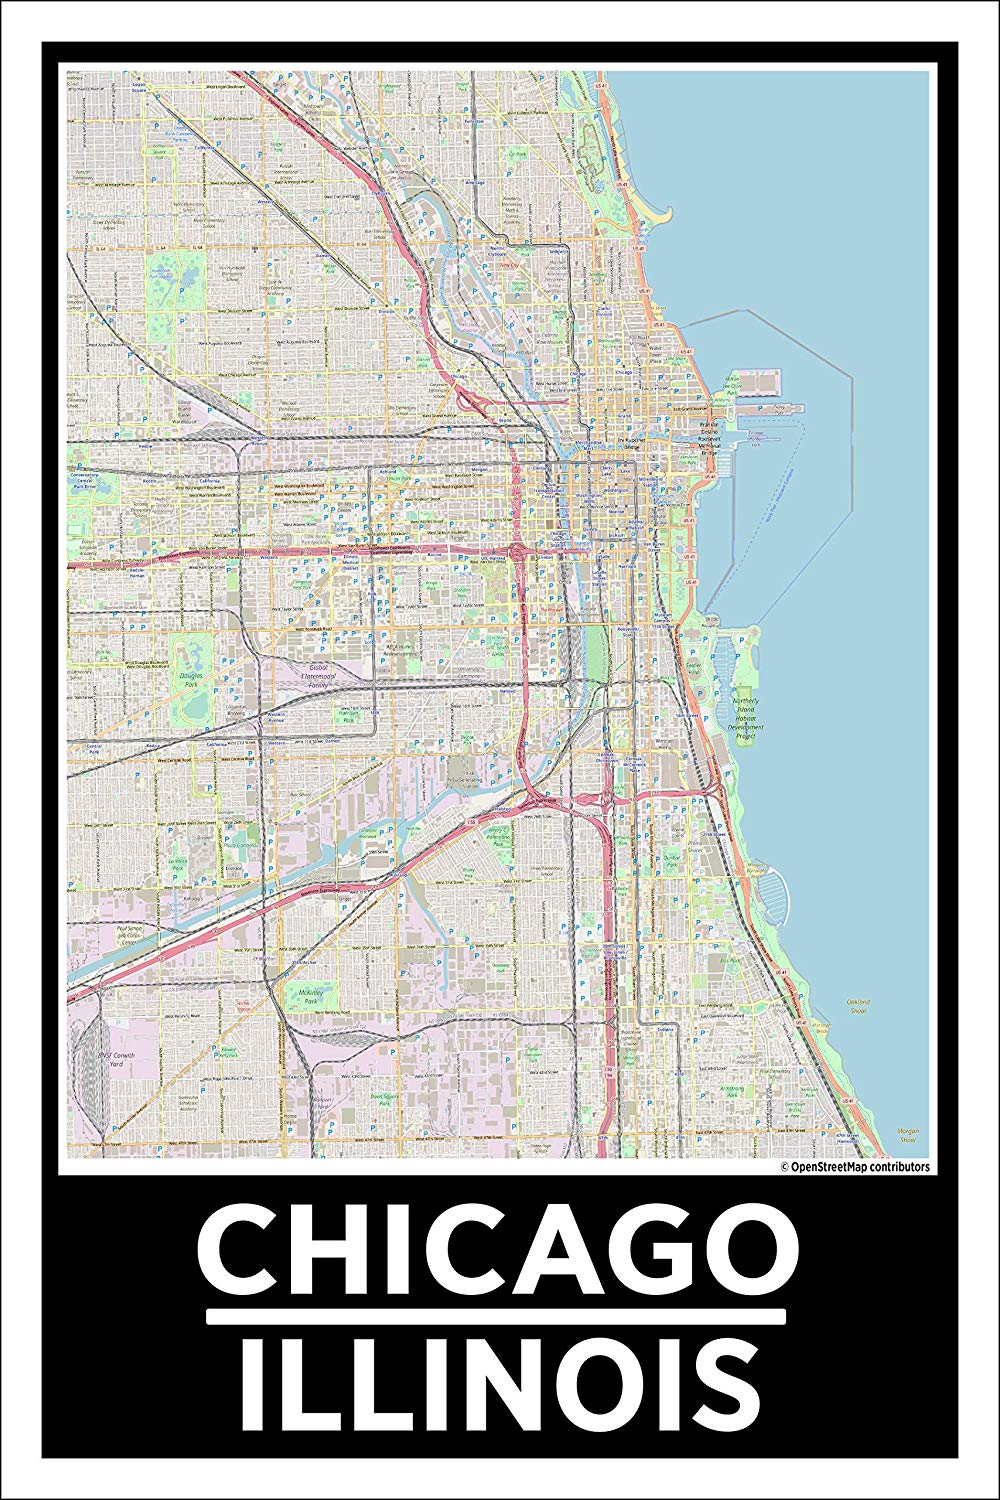 "Spitzy's Chicago Illinois Map Poster - Home Wall Art for Your Bedroom or Home Office - Map of Chicago, City Map Poster (12"" x 18"" Dimensions Include a White .5"" Border)"